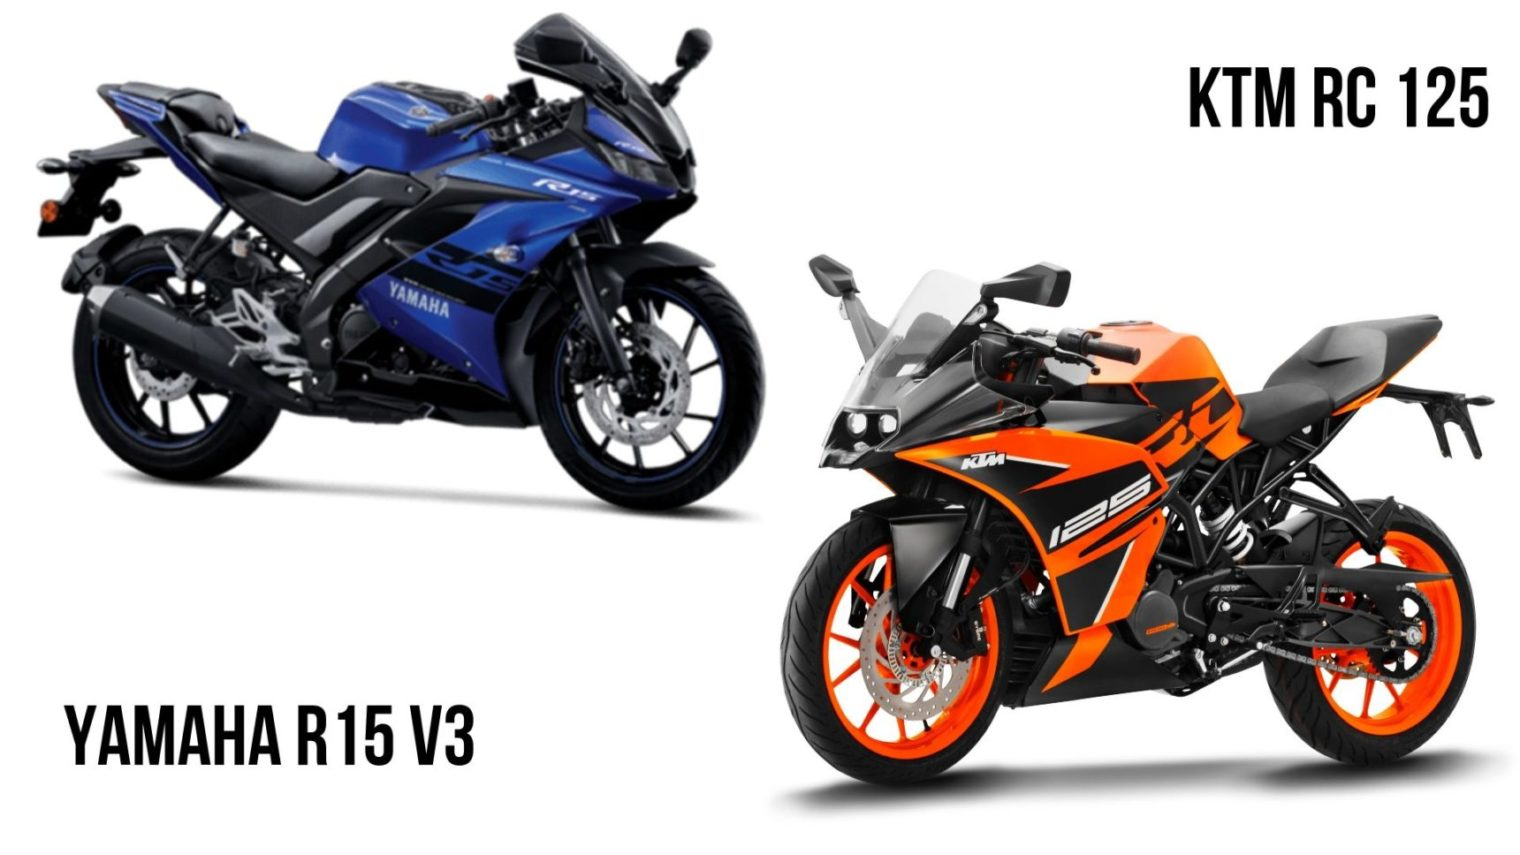 Ktm Rc 125 Vs Yamaha Yzf R15 V3 0 Specs Comparison